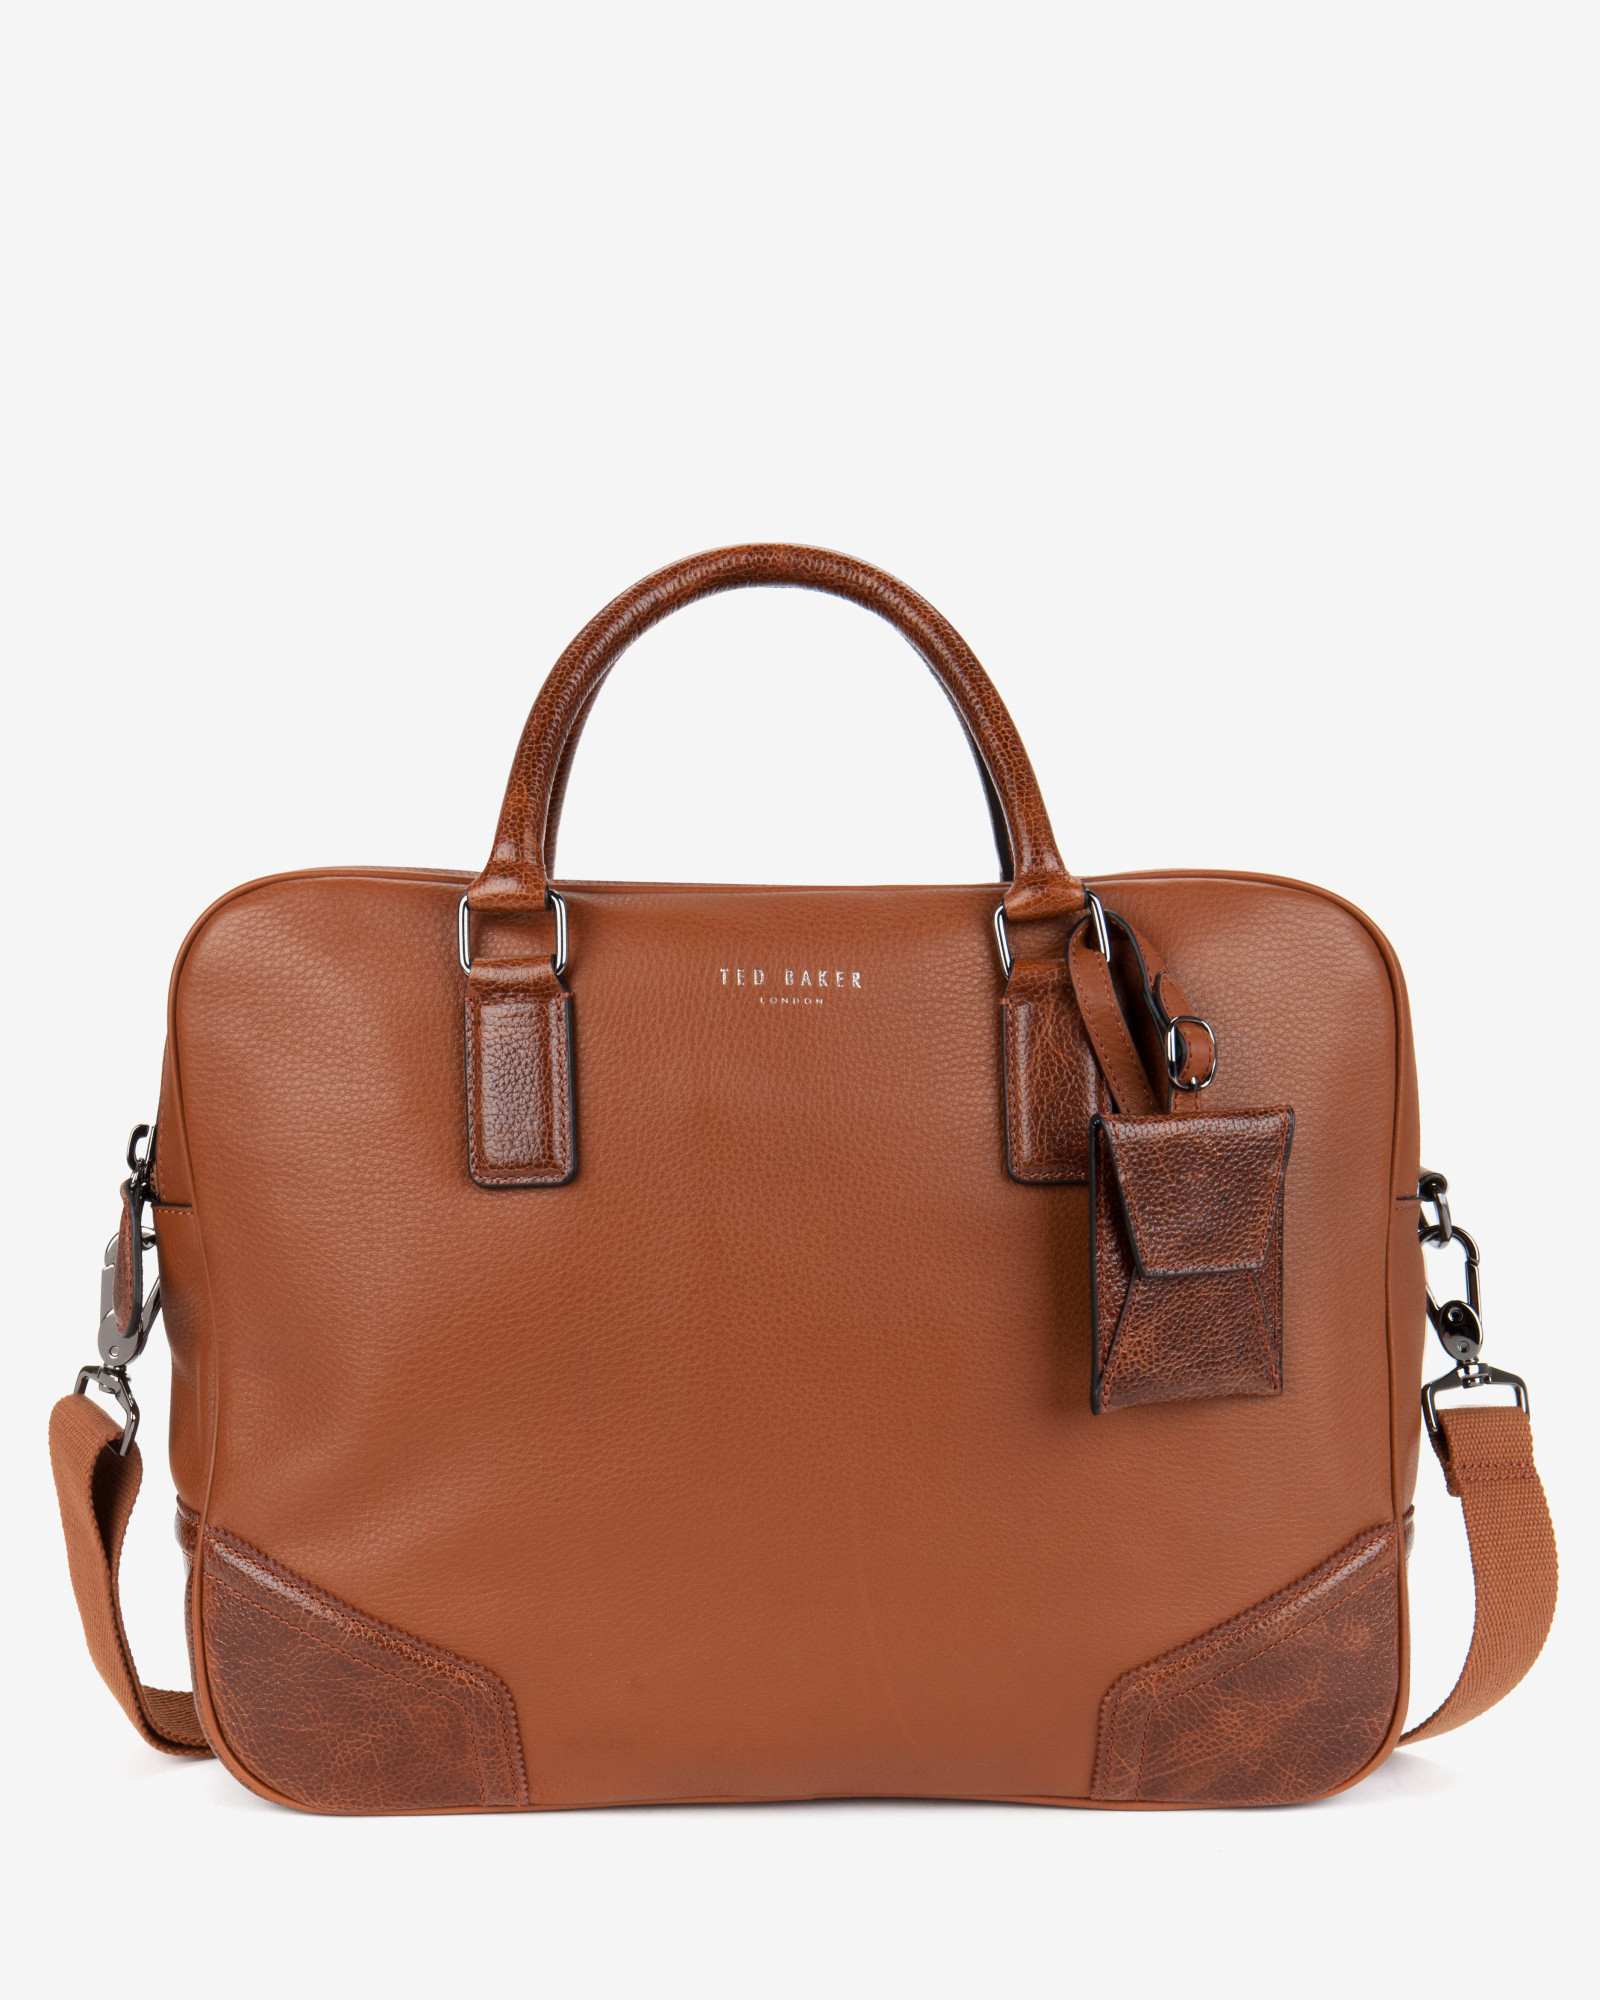 2b0c124214 Ted Baker Leather Document Bag in Brown for Men - Lyst